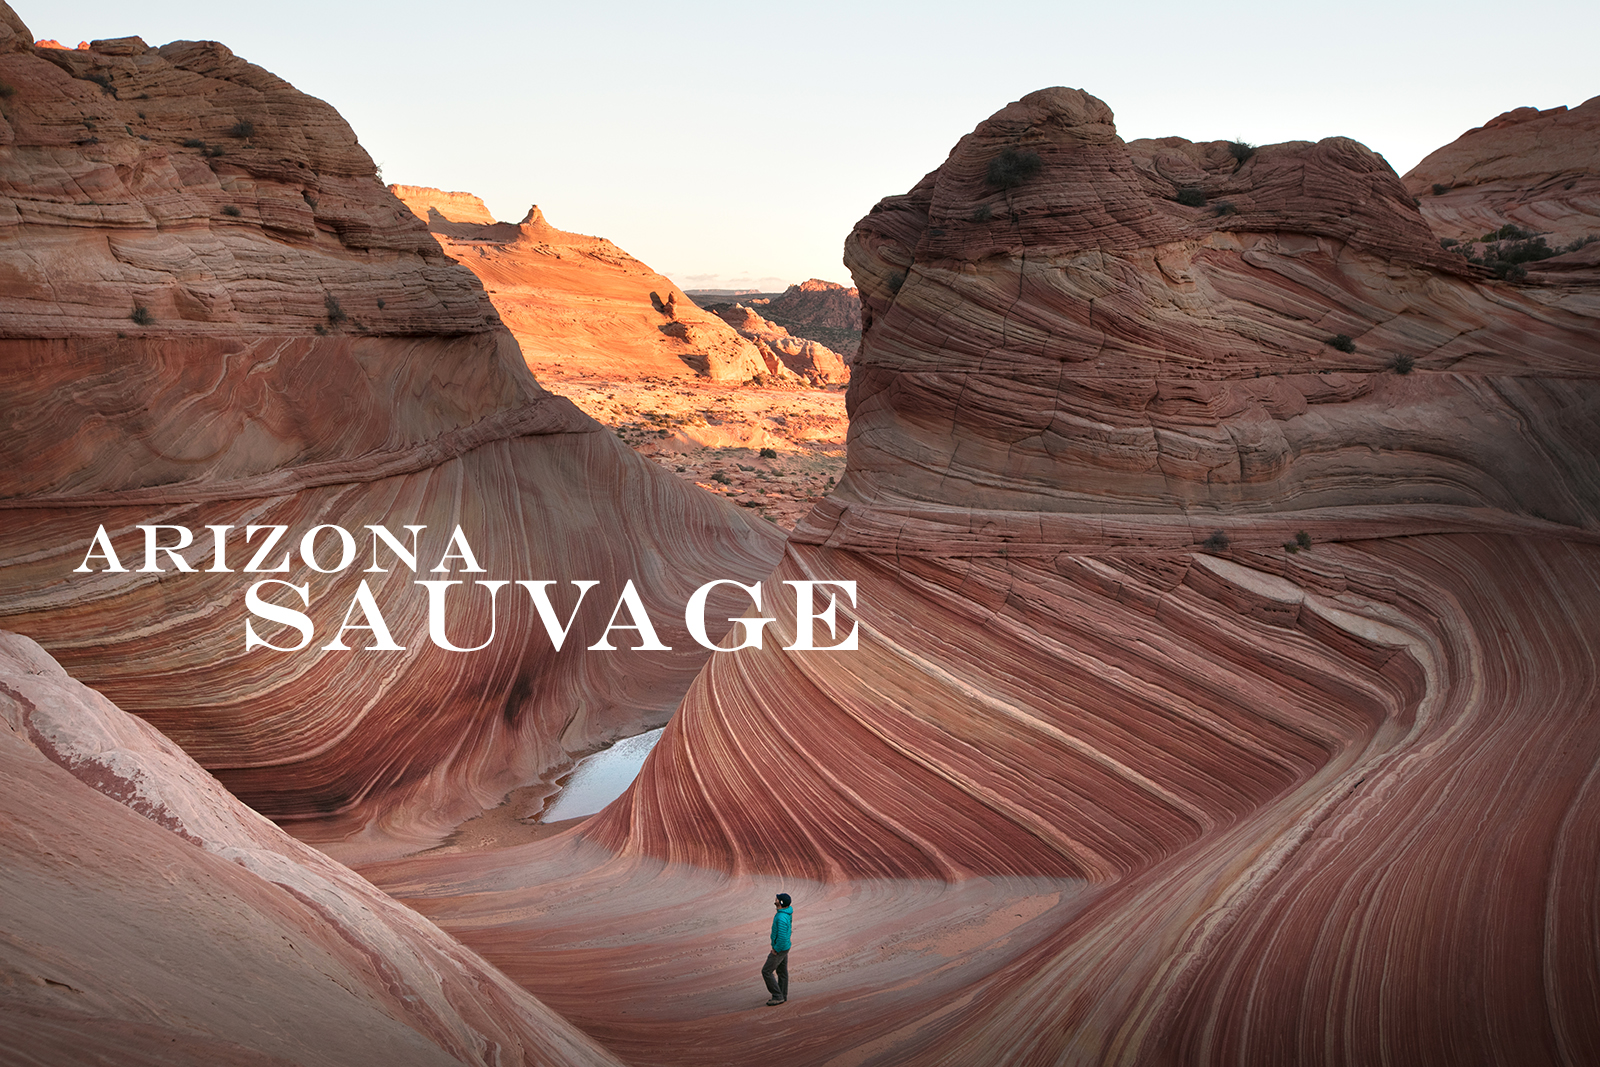 Arizona Sauvage, Lettre d'amour à The Wave